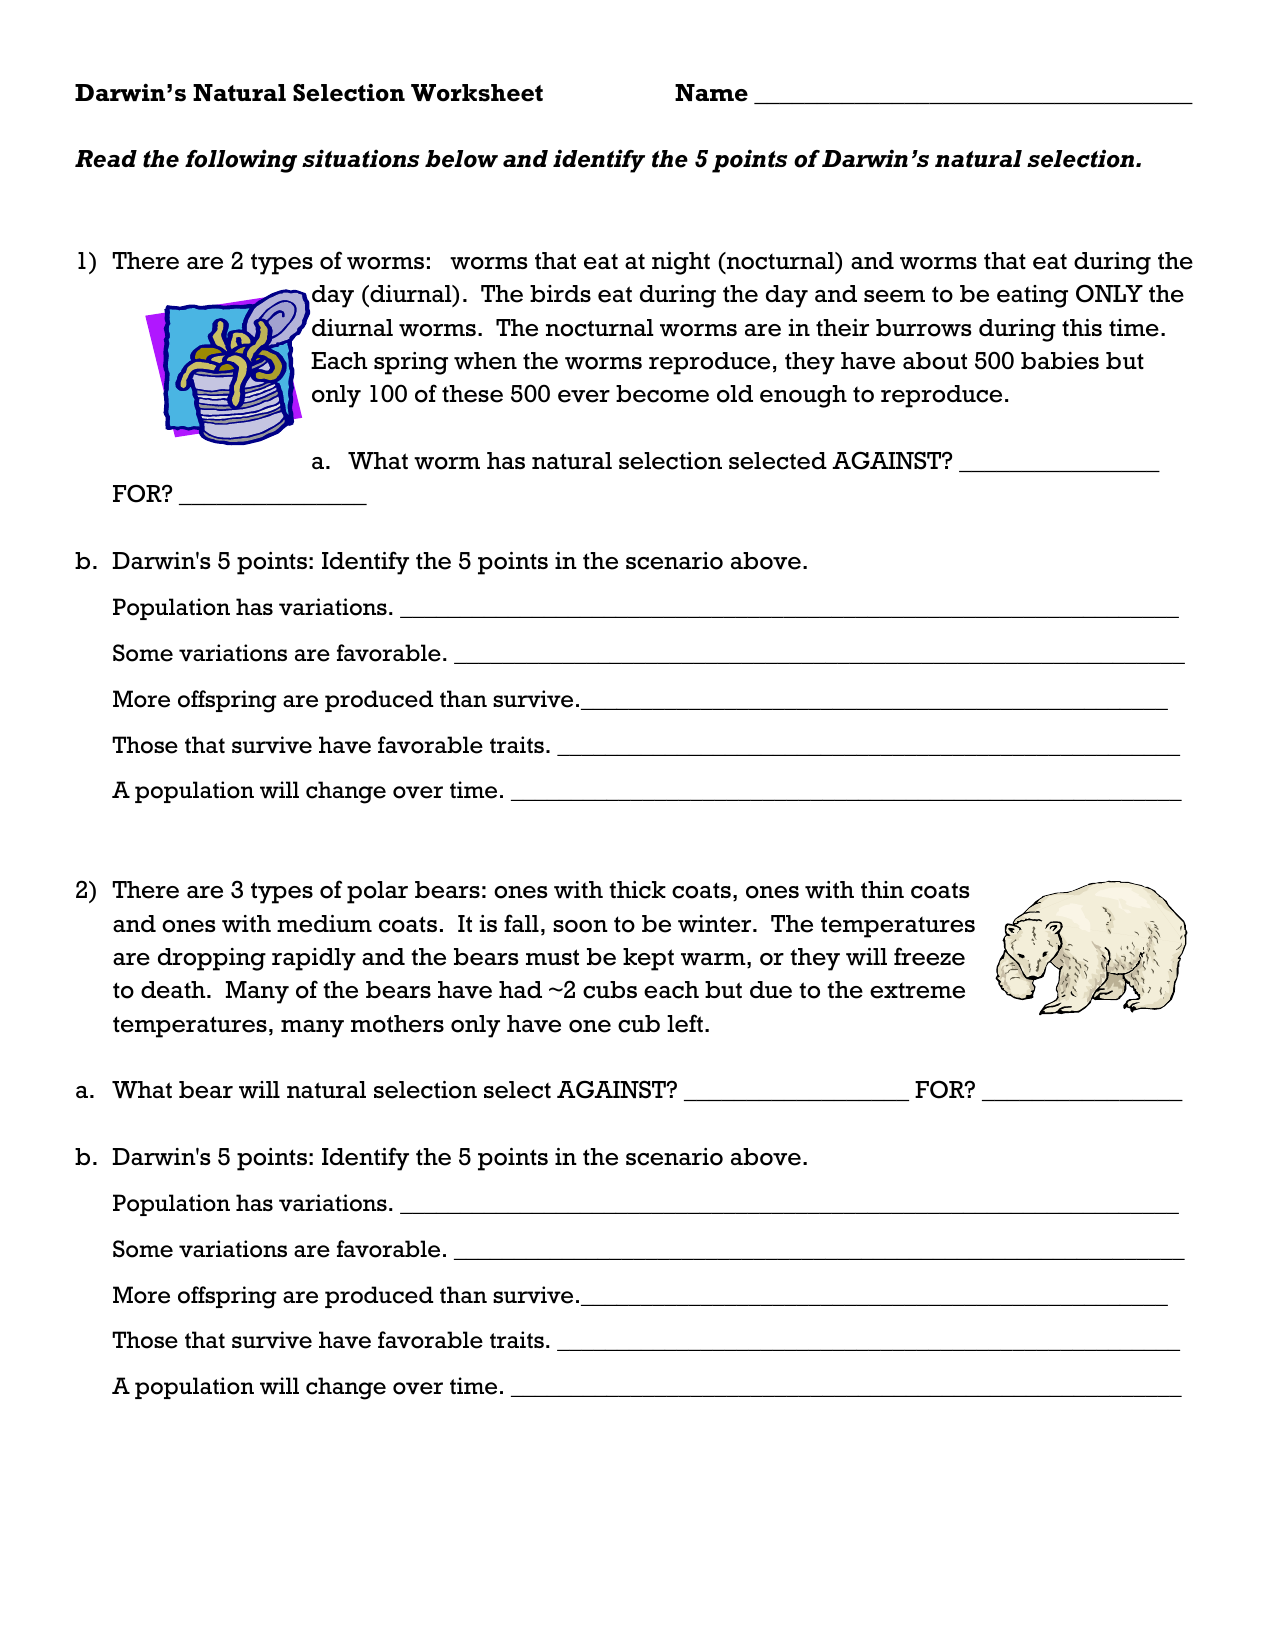 Darwin S Natural Selection Worksheet การศ กษา